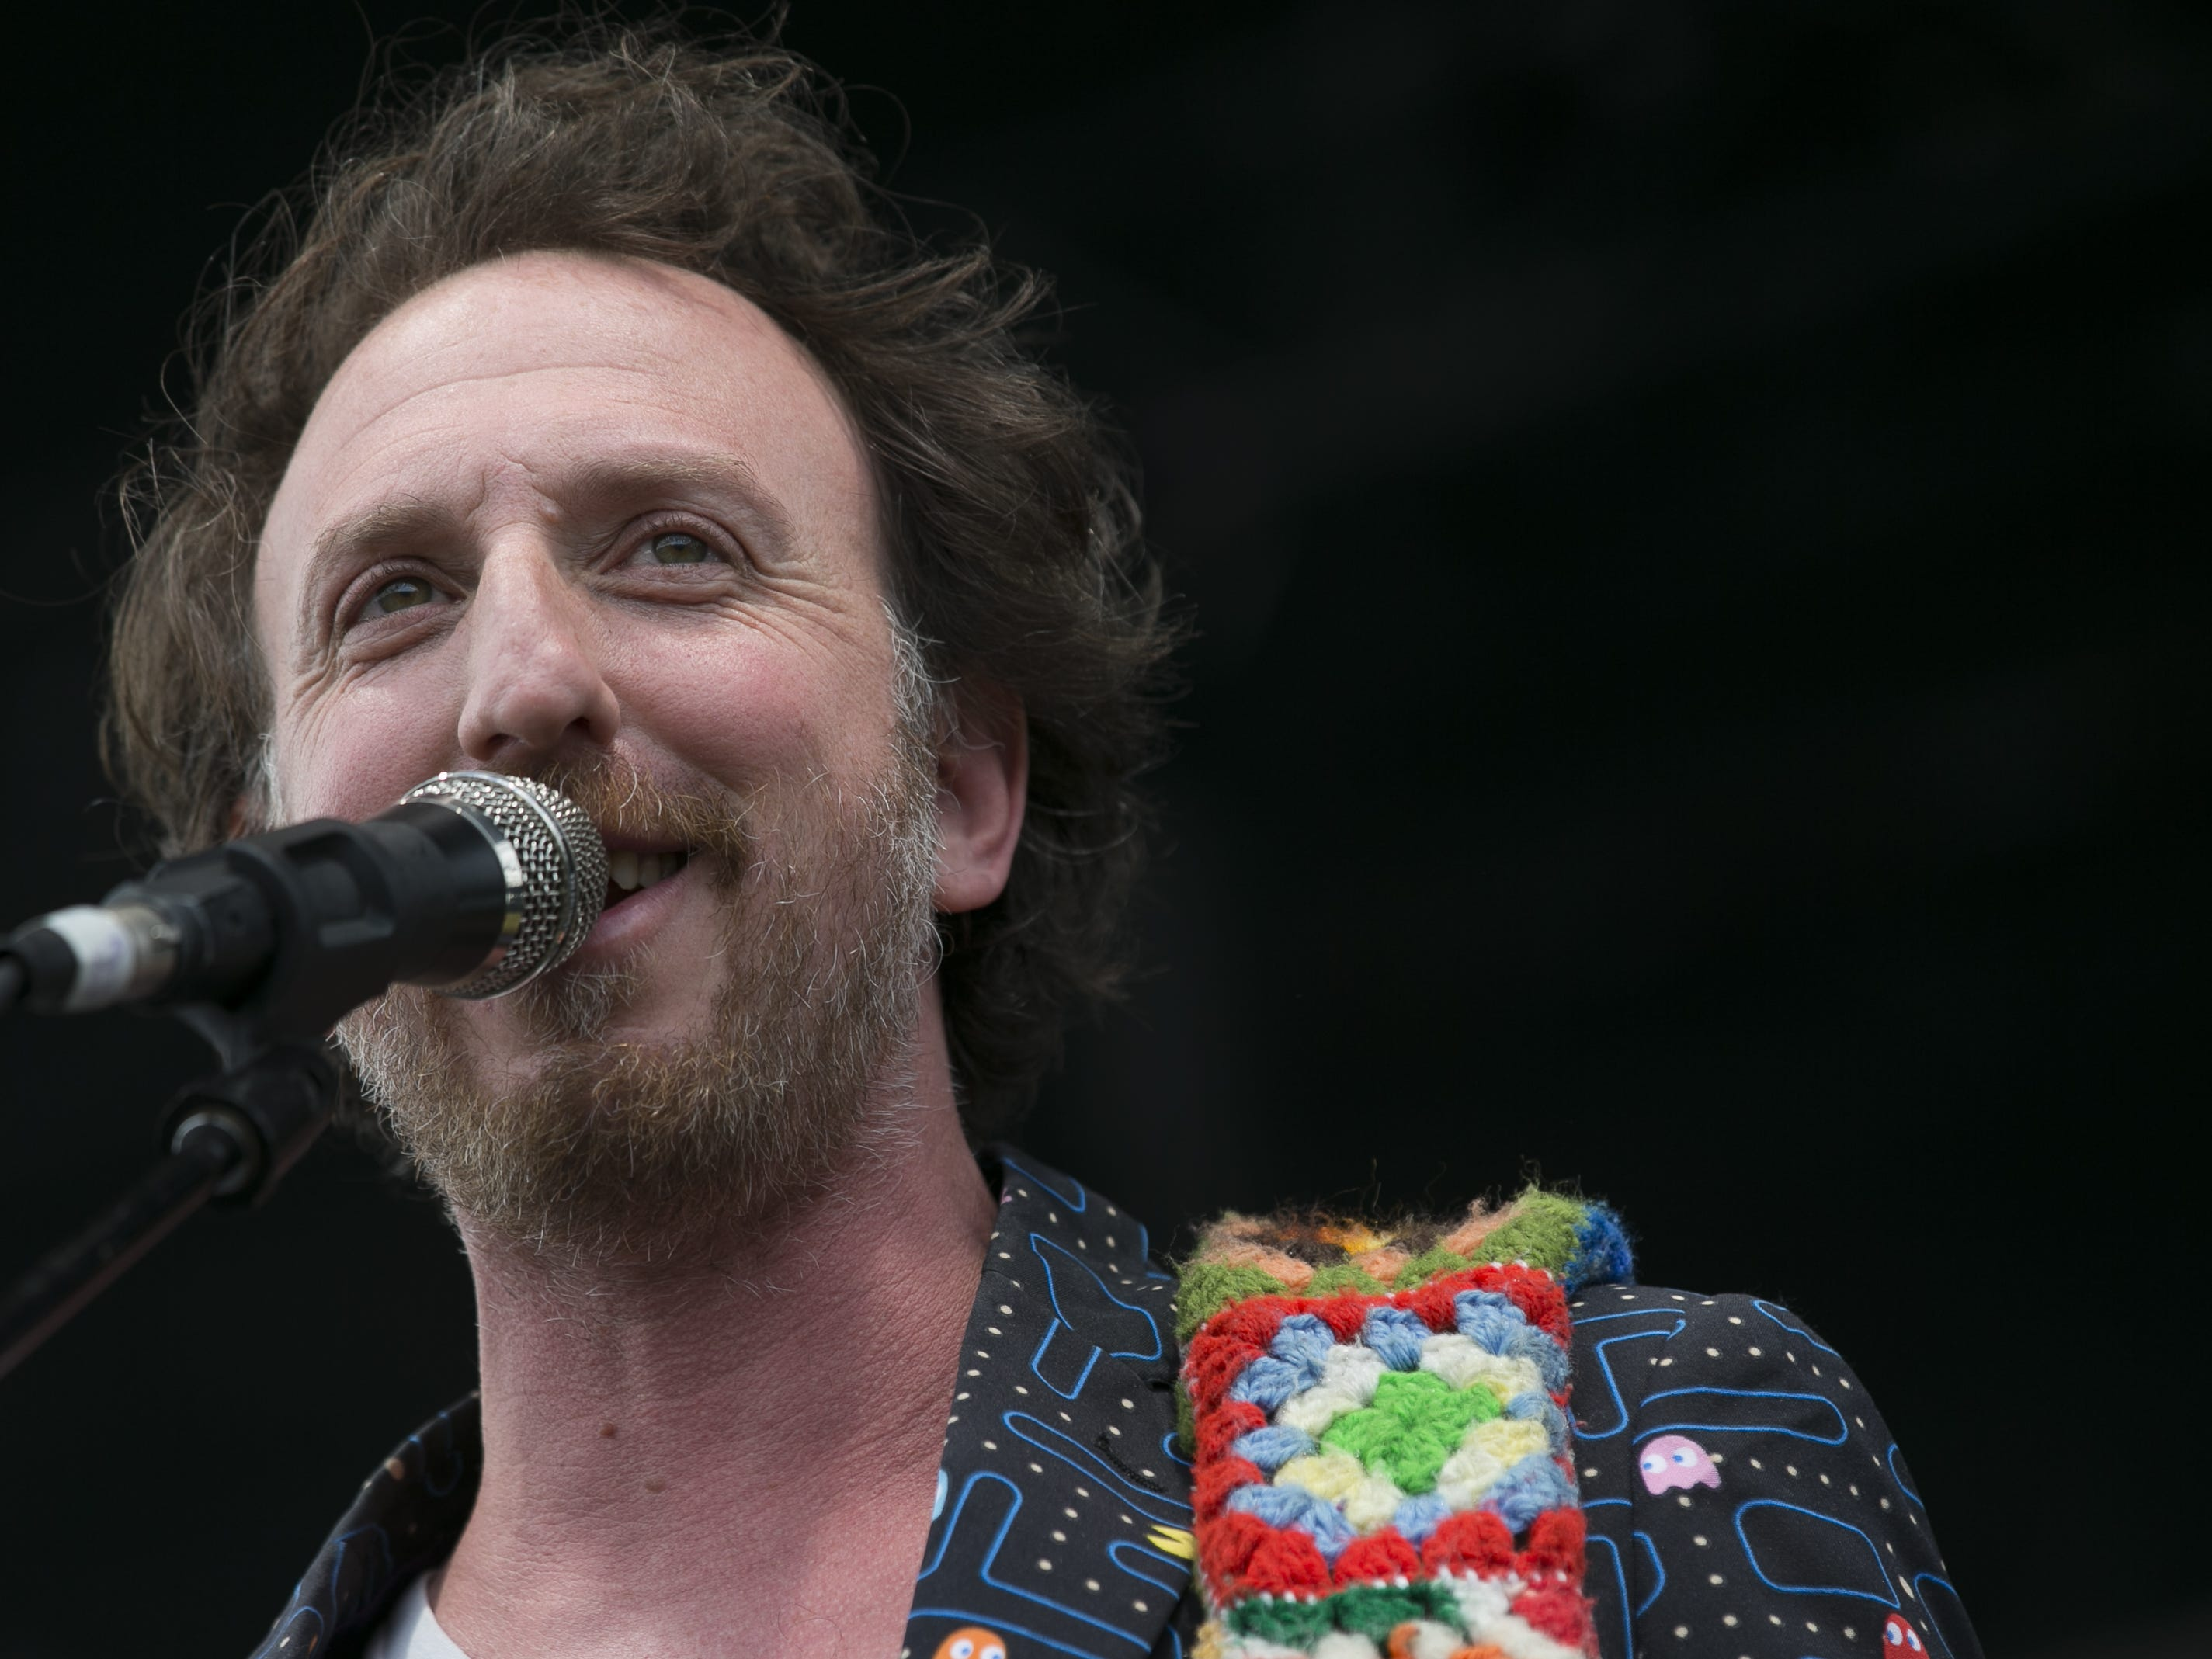 Guster performs at the Innings Festival at Tempe Beach Park in Ariz. on Saturday, March 2, 2019.